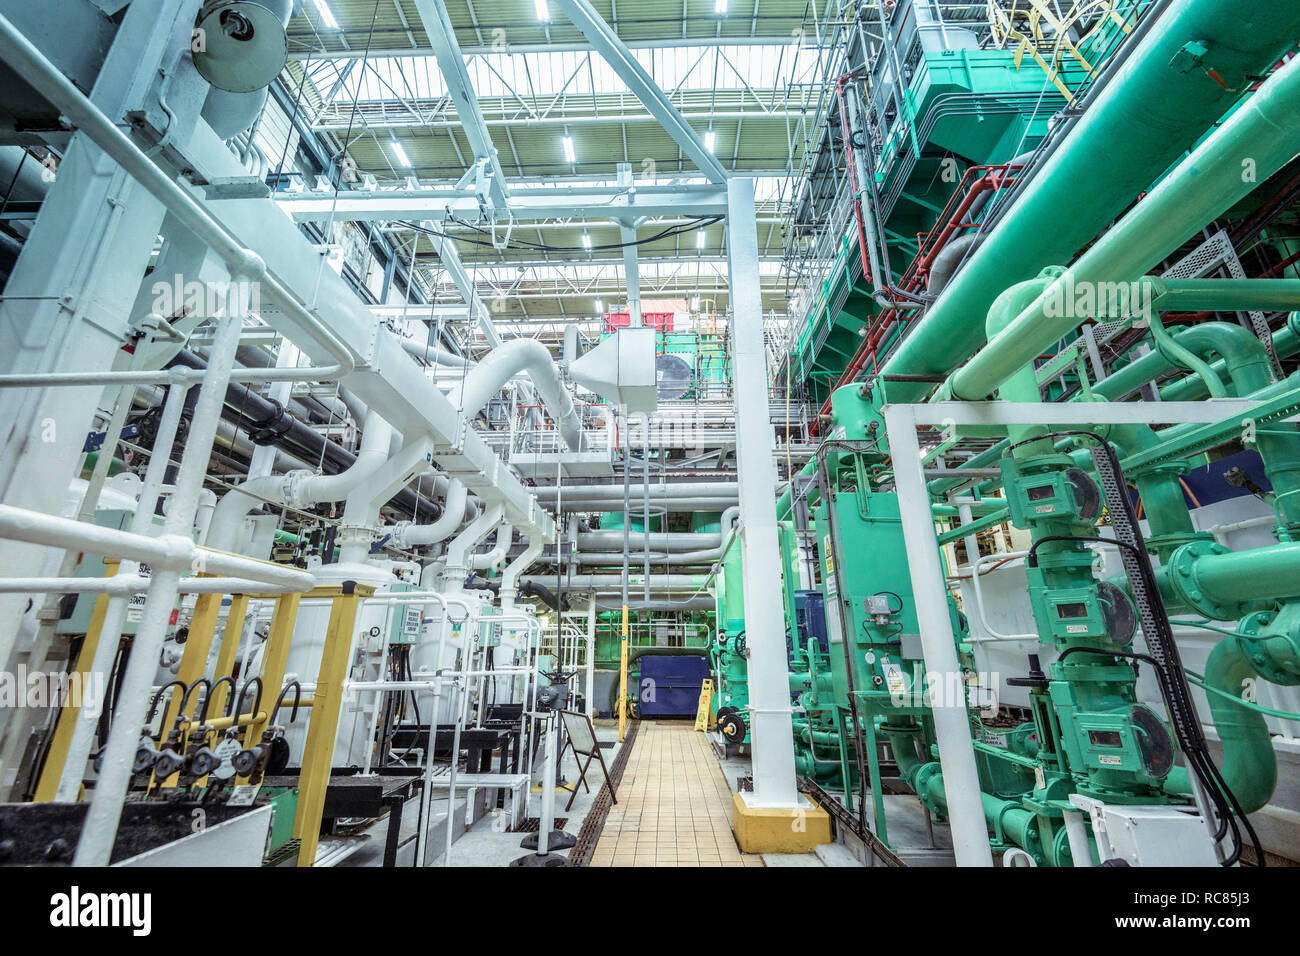 View of turbine hall in nuclear power station - Stock Image